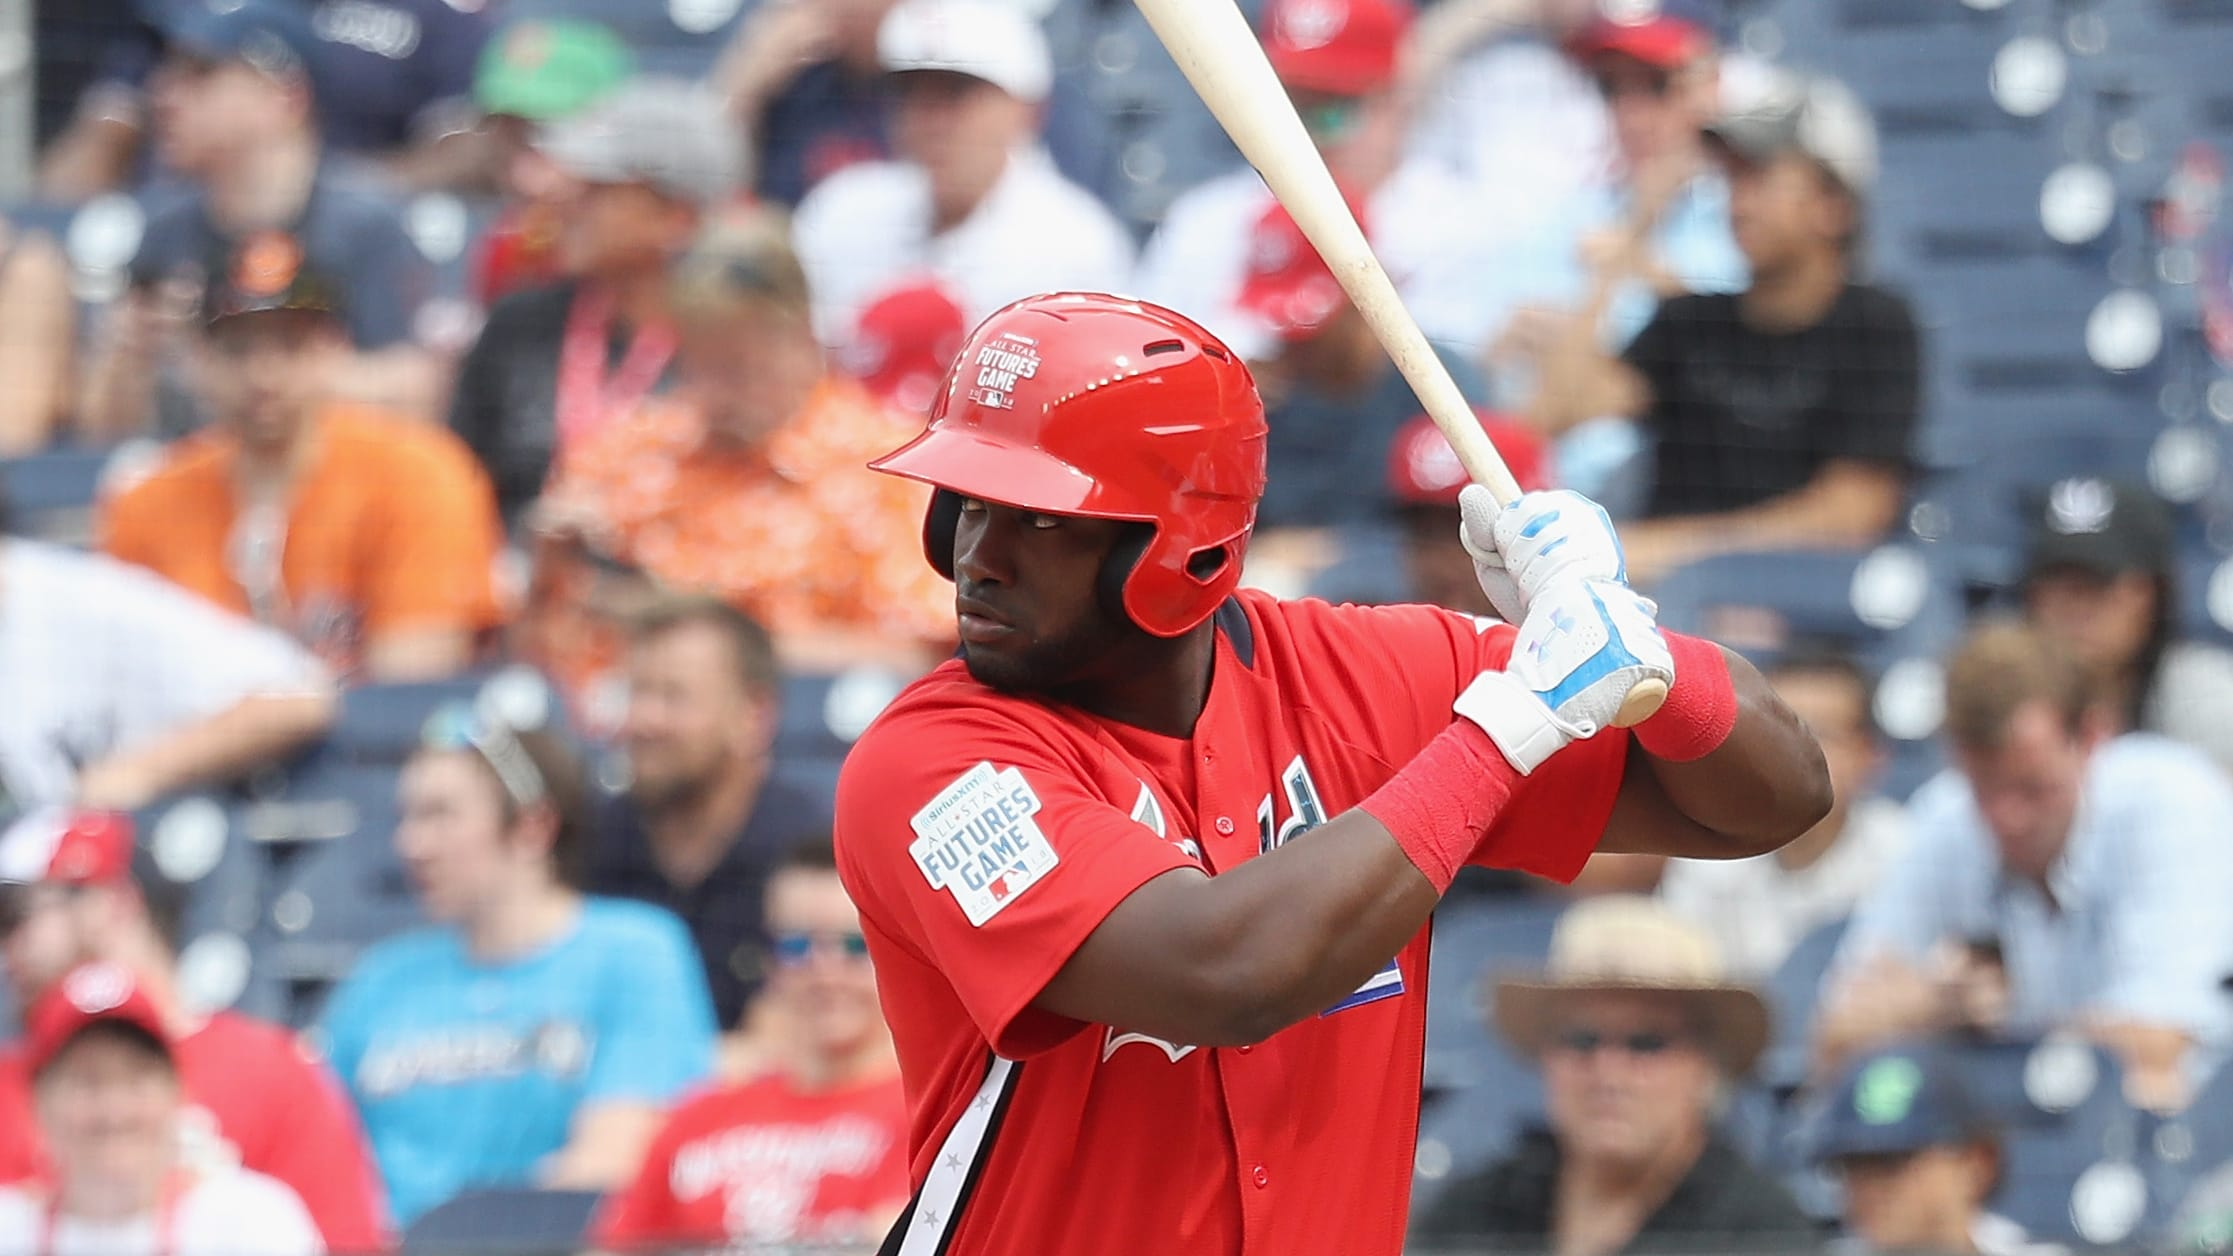 WASHINGTON, DC - JULY 15: Yordan Alvarez #45 of the Houston Astros and the World Team bats against the U.S. Team during the SiriusXM All-Star Futures Game at Nationals Park on July 15, 2018 in Washington, DC.  (Photo by Rob Carr/Getty Images)